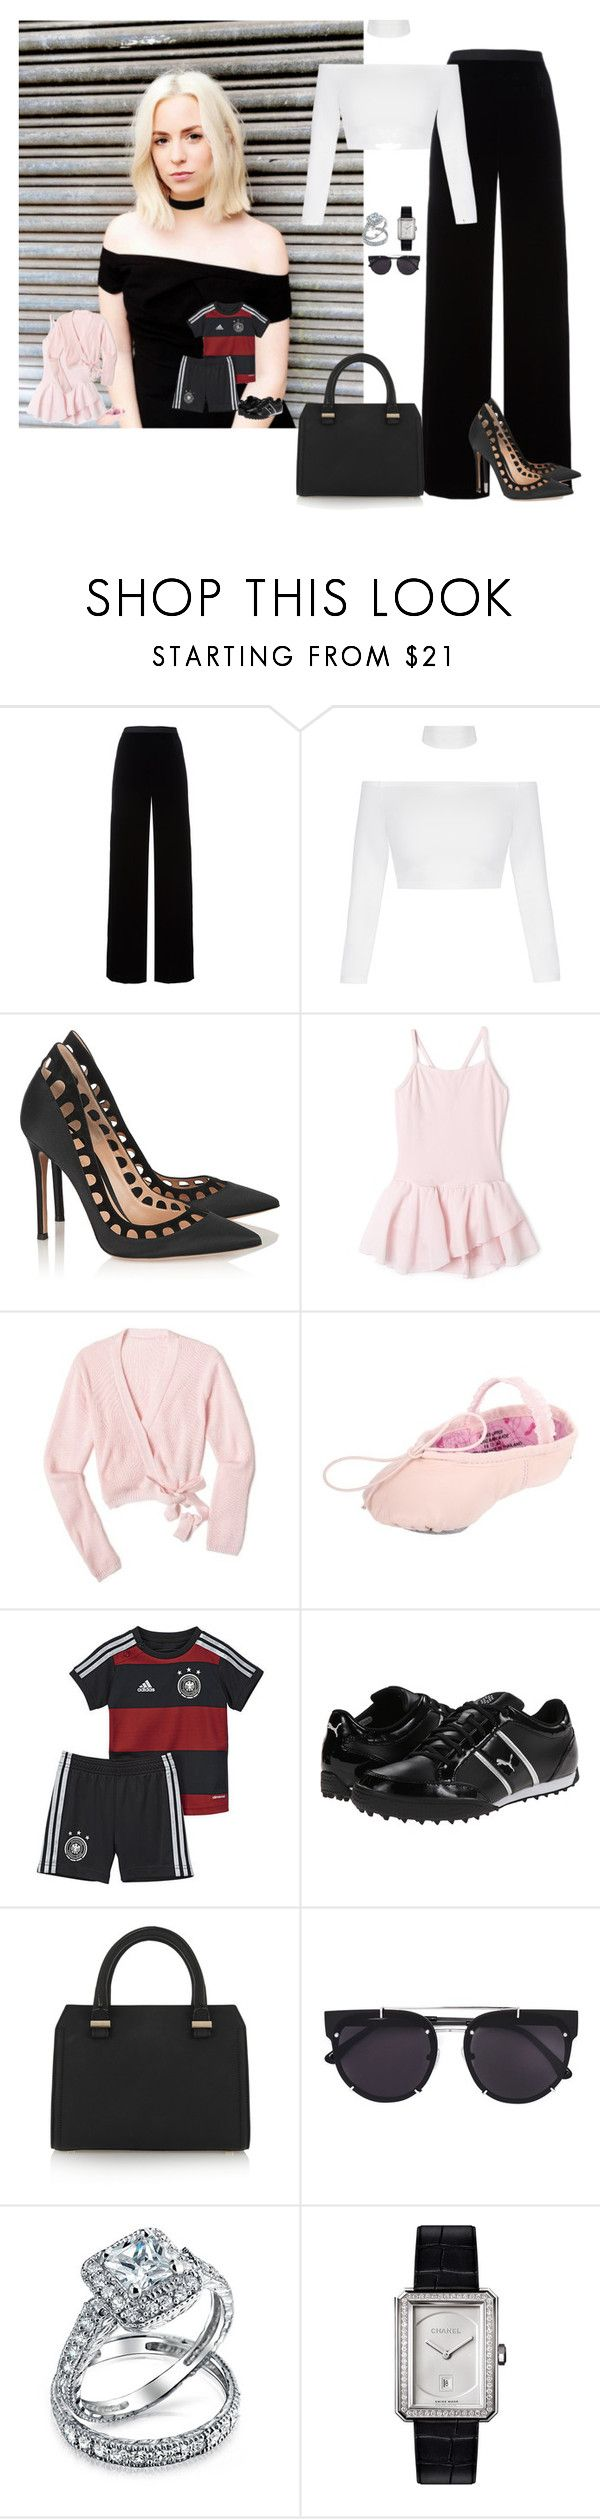 """""""Sin título #1171"""" by wiki0622 ❤ liked on Polyvore featuring T By Alexander Wang, Gianvito Rossi, Capezio, Puma, Victoria Beckham, Vera Wang, Bling Jewelry and Chanel"""